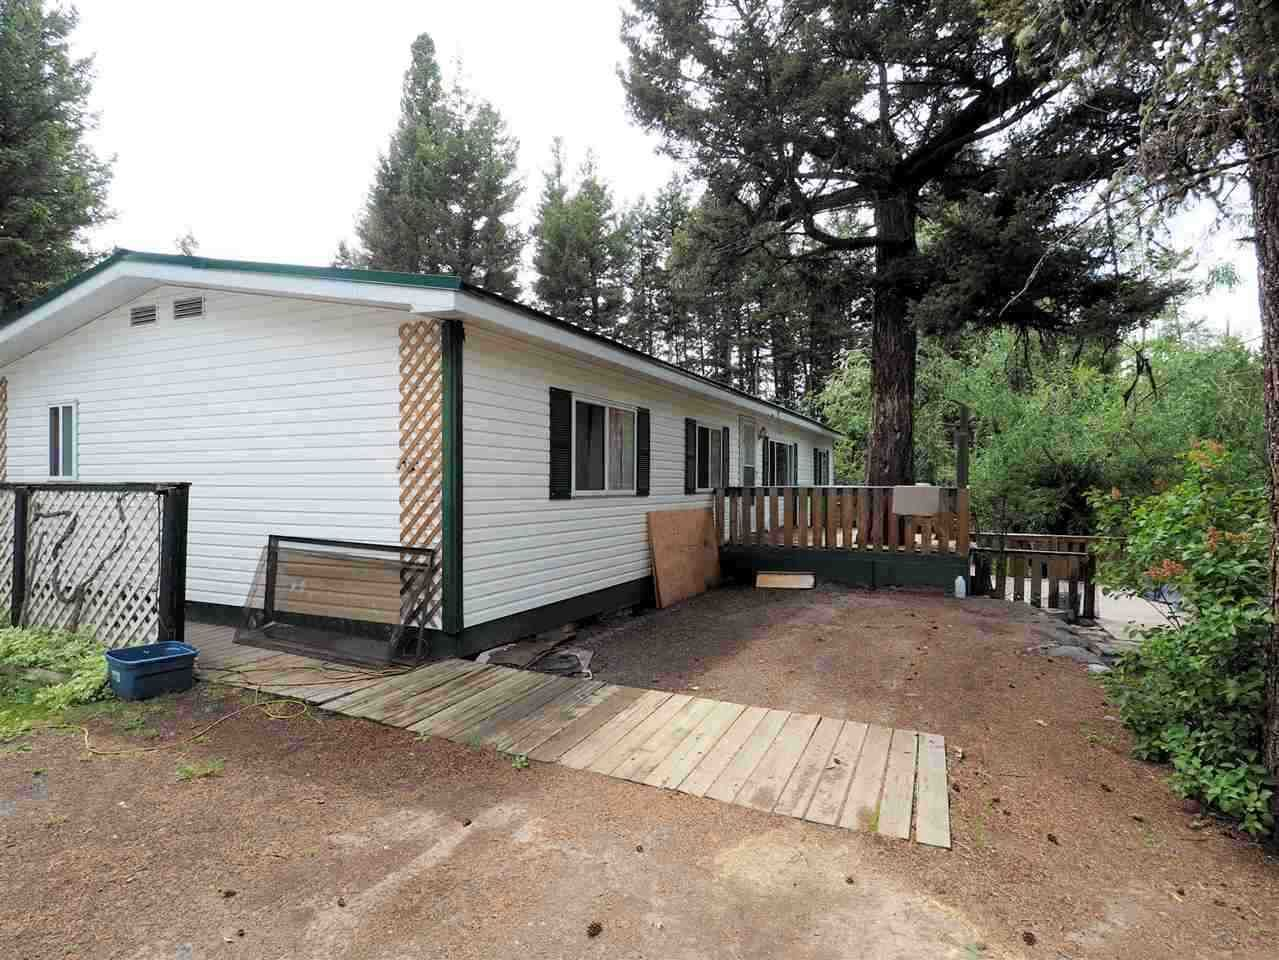 Main Photo: 4836 GLOINNZUN Drive in 108 Mile Ranch: 108 Ranch Manufactured Home for sale (100 Mile House (Zone 10))  : MLS®# R2435093